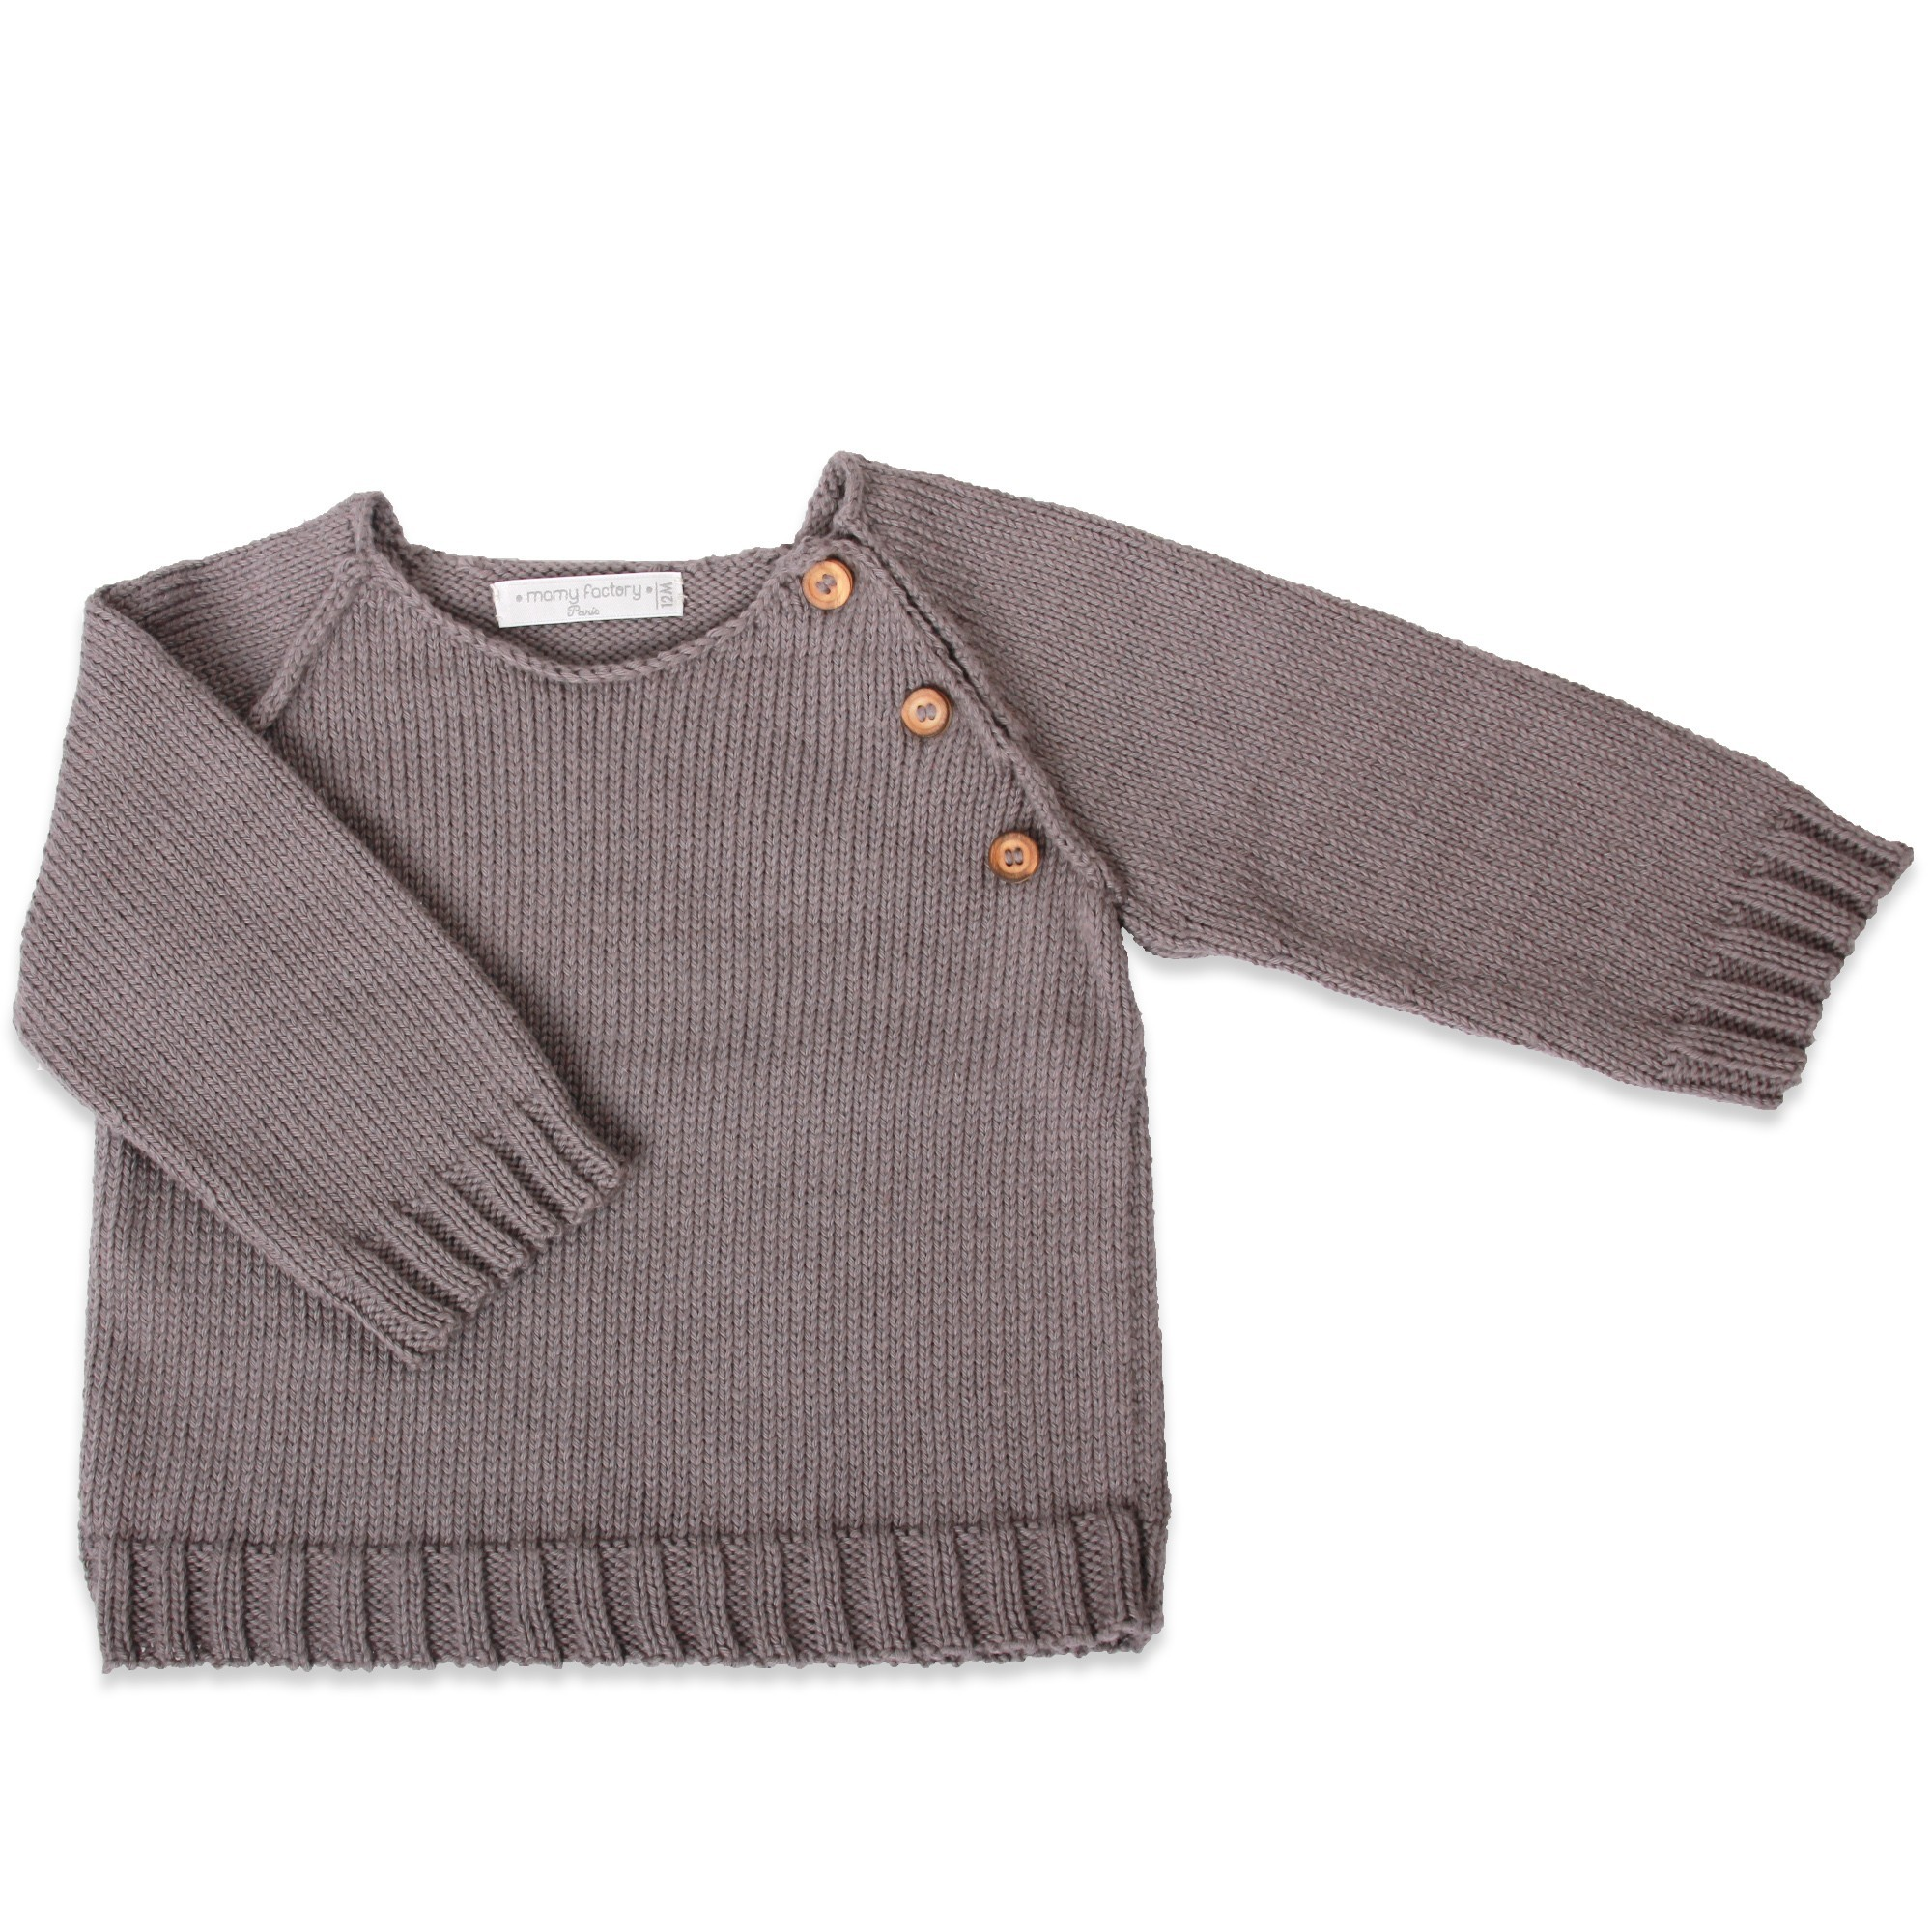 Grannys Knitwear Anthracite Jumper And Raglan Sleeves 90 Cotton